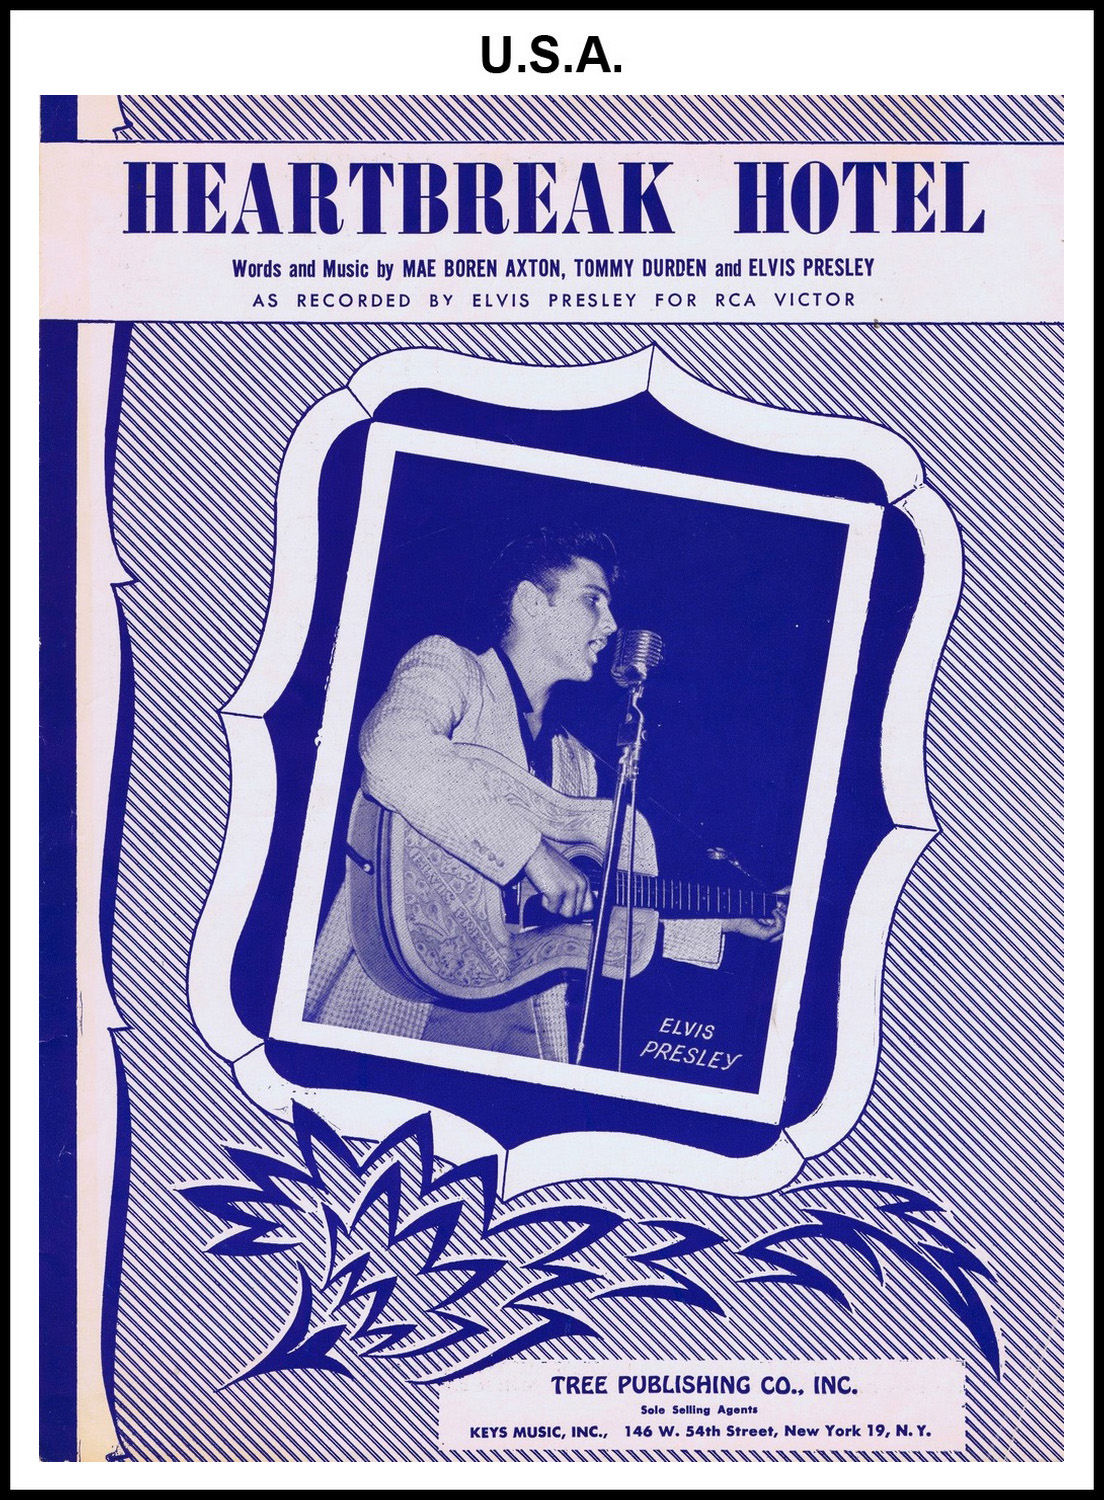 1956 - Heartbreak Hotel (USA) (CHRIS GILES COLLECTION)